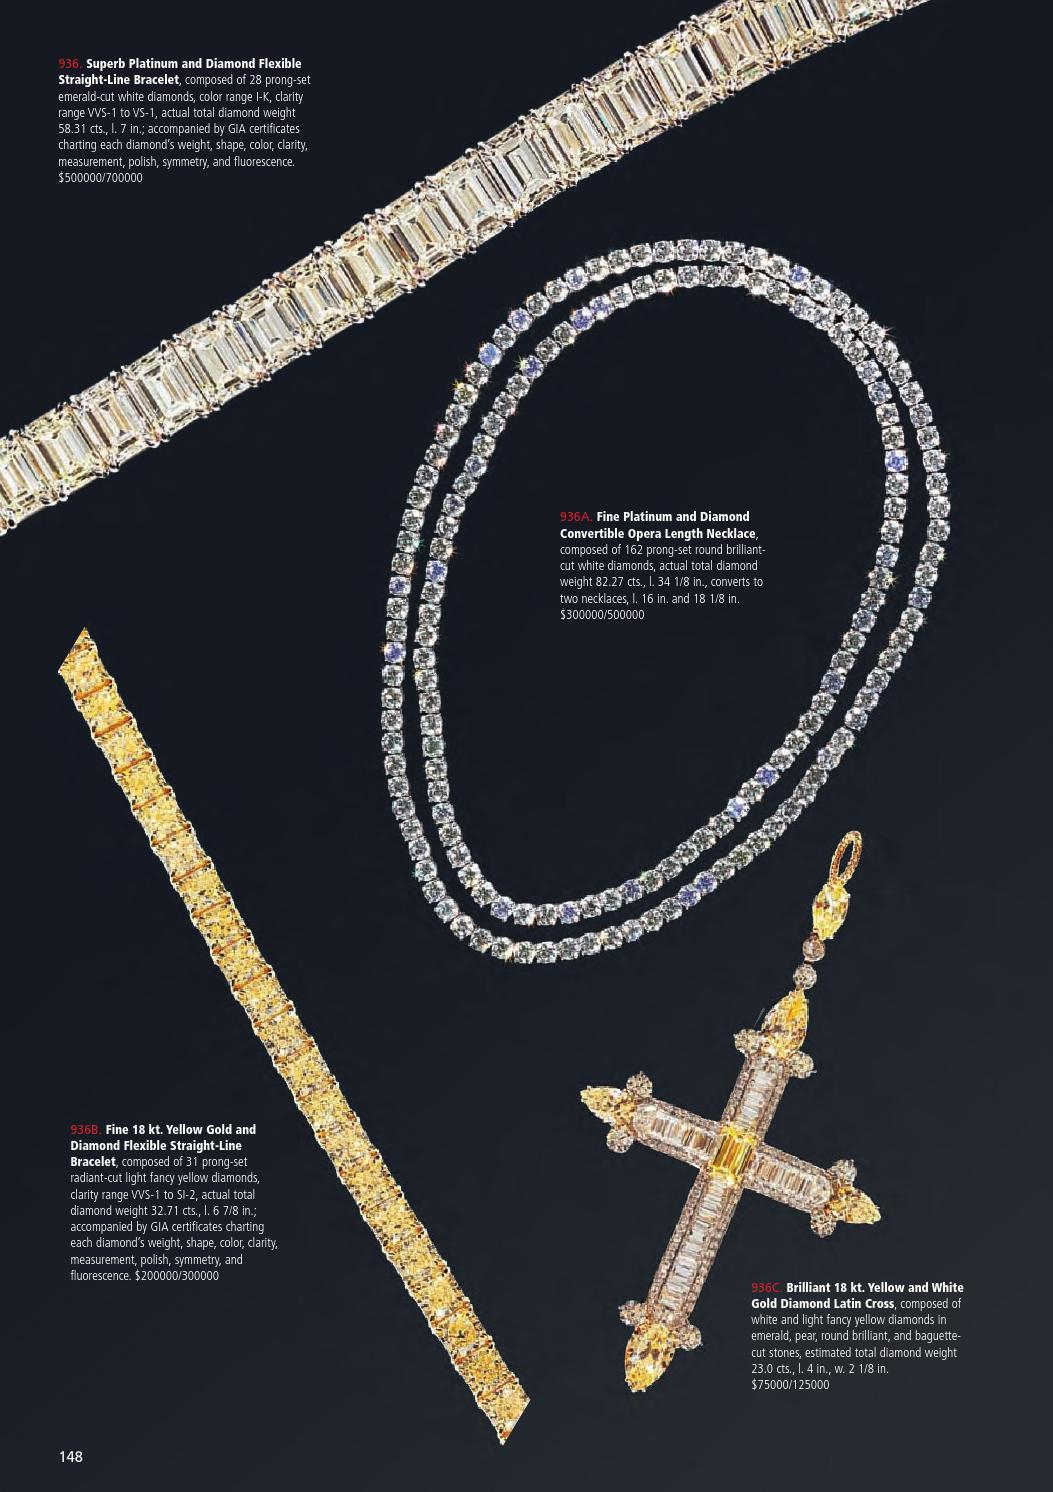 February 19 21, 2016 Winter Estates Auctionneal Auction Intended For Most Popular Round Brilliant Diamond Straightline Necklaces (Gallery 20 of 25)